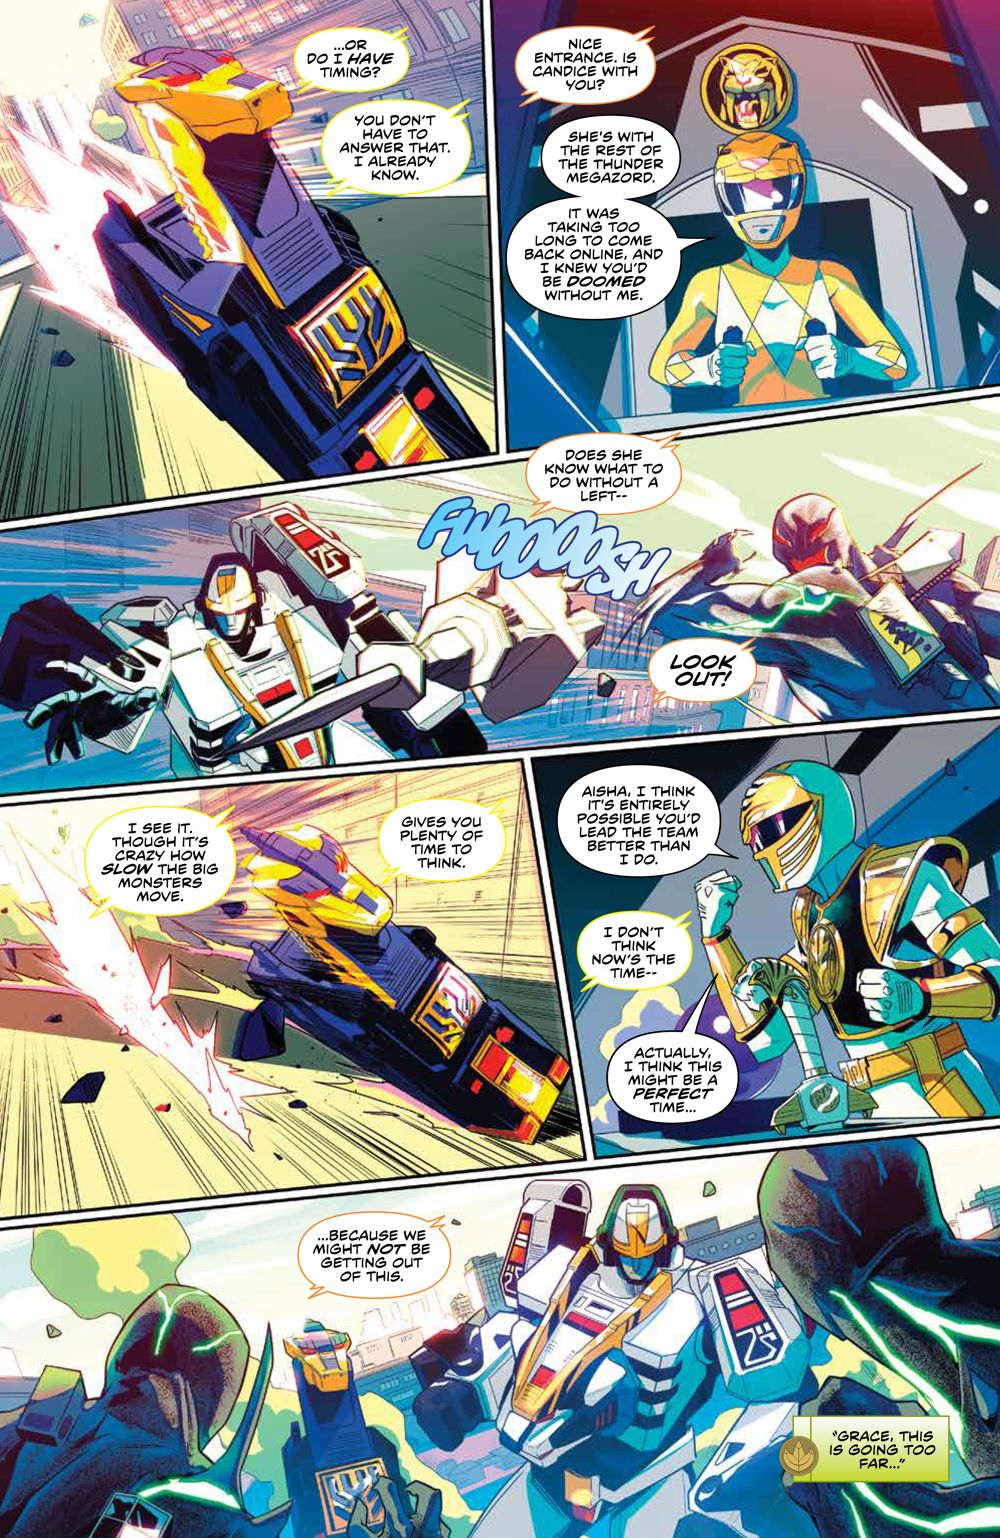 Mighty_Morphin_008_PRESS_8-1 ComicList Previews: MIGHTY MORPHIN #8